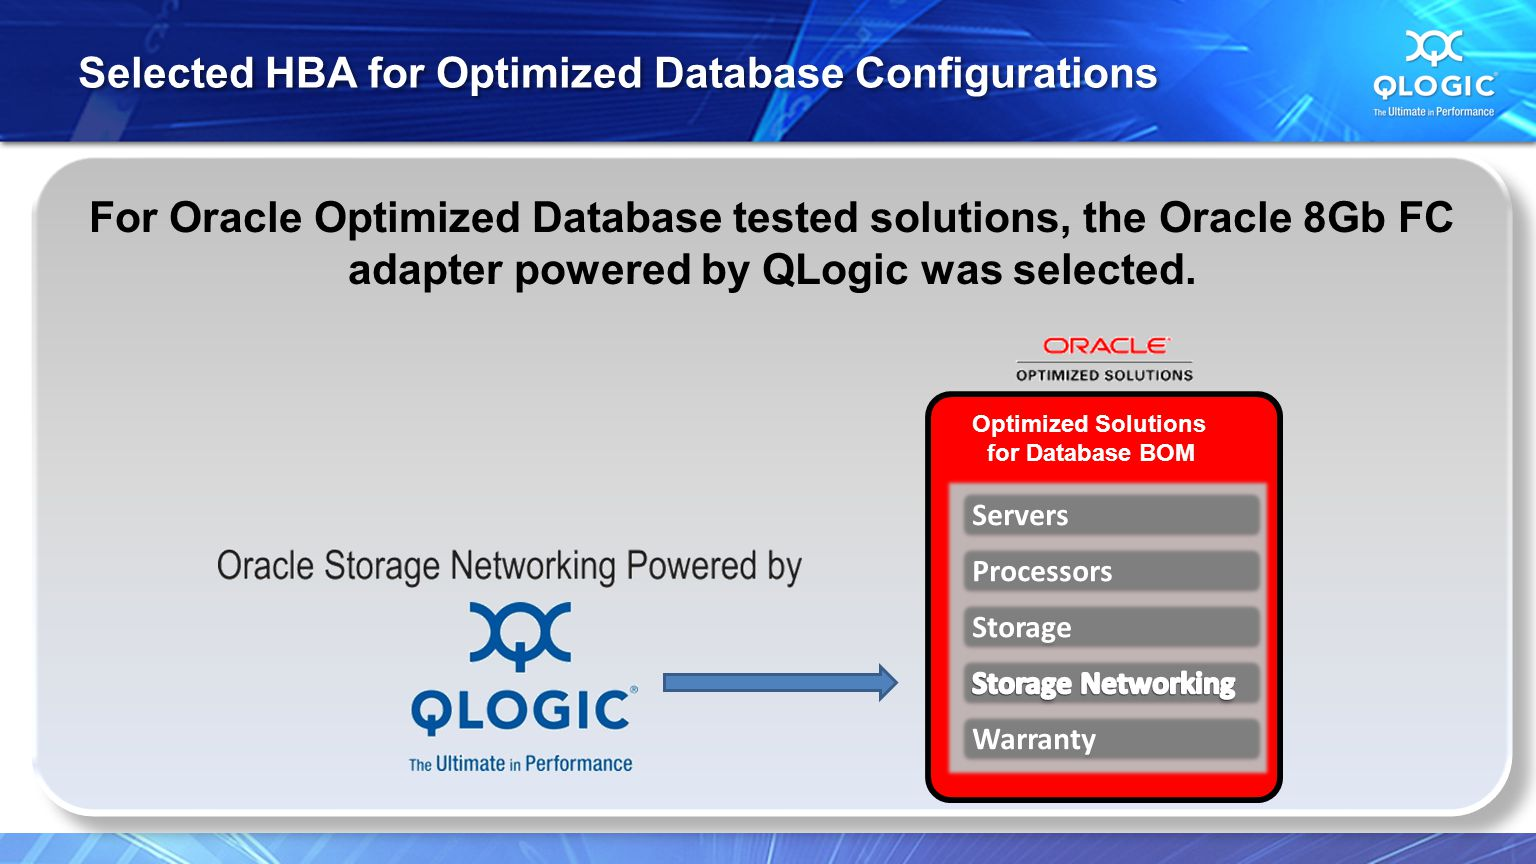 For Oracle Optimized Database tested solutions, the Oracle 8Gb FC adapter powered by QLogic was selected.